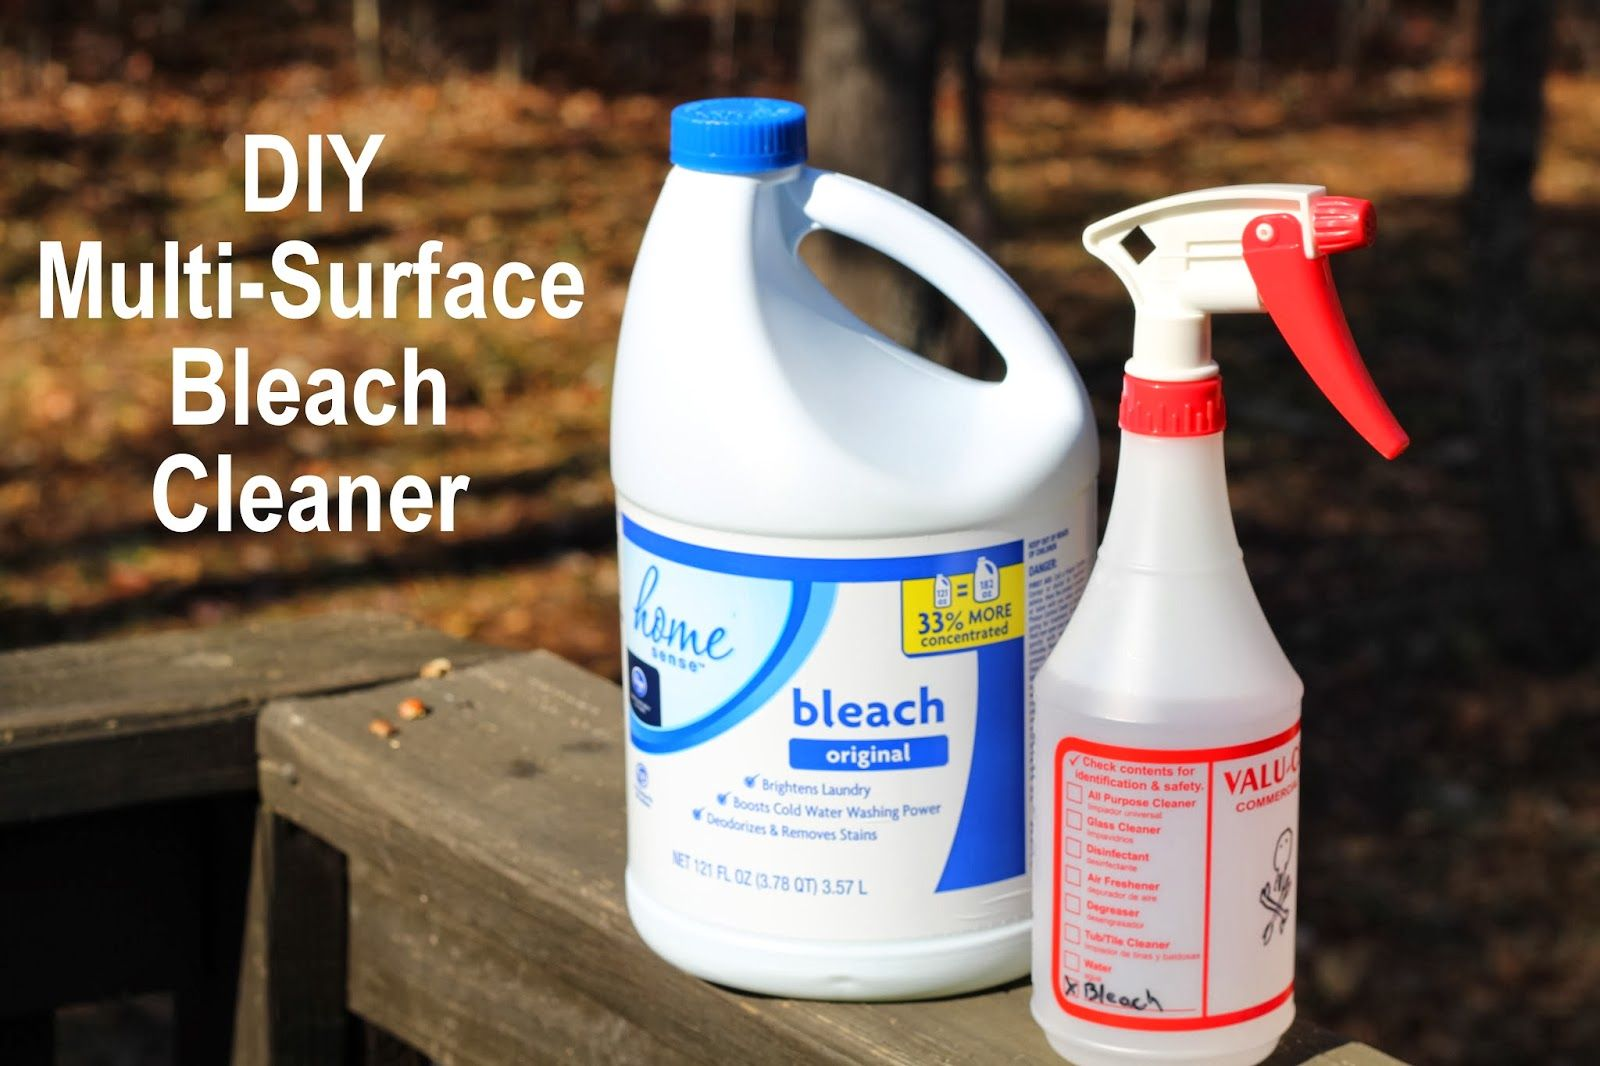 Diy multisurface bleach cleaner with images easy